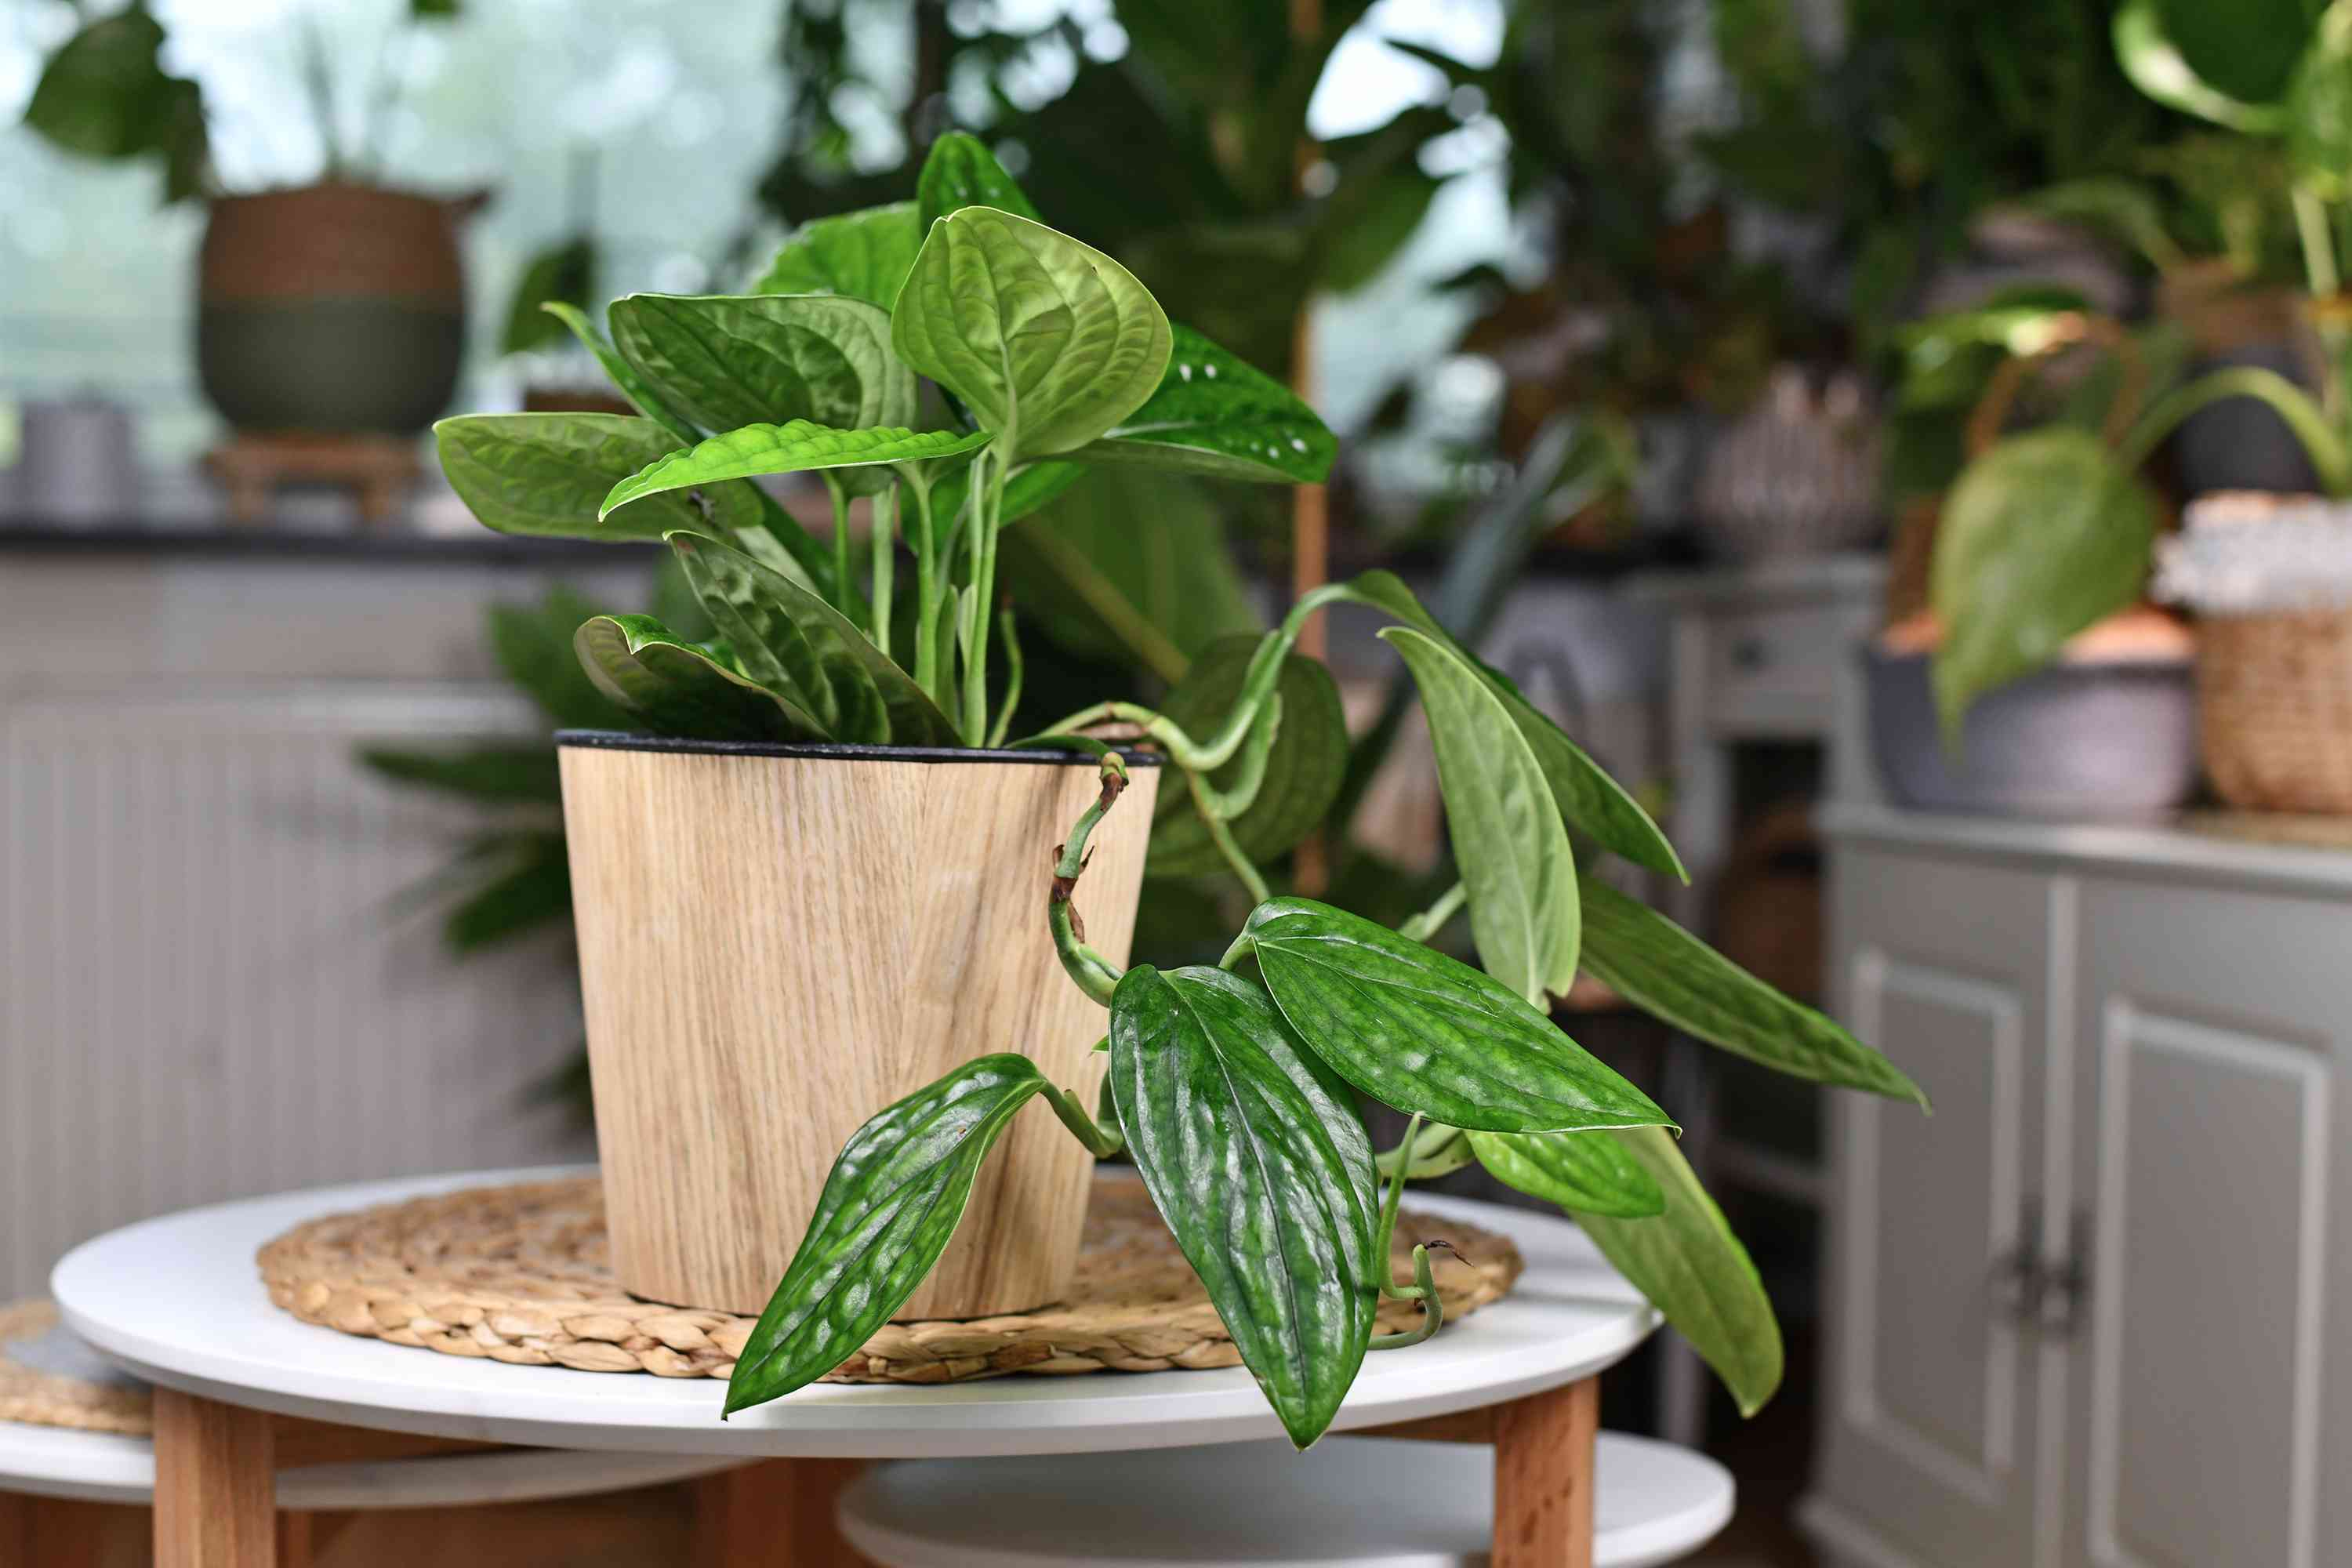 Monstera Peru in a wood pot on top of a white stool with other plants in the background.